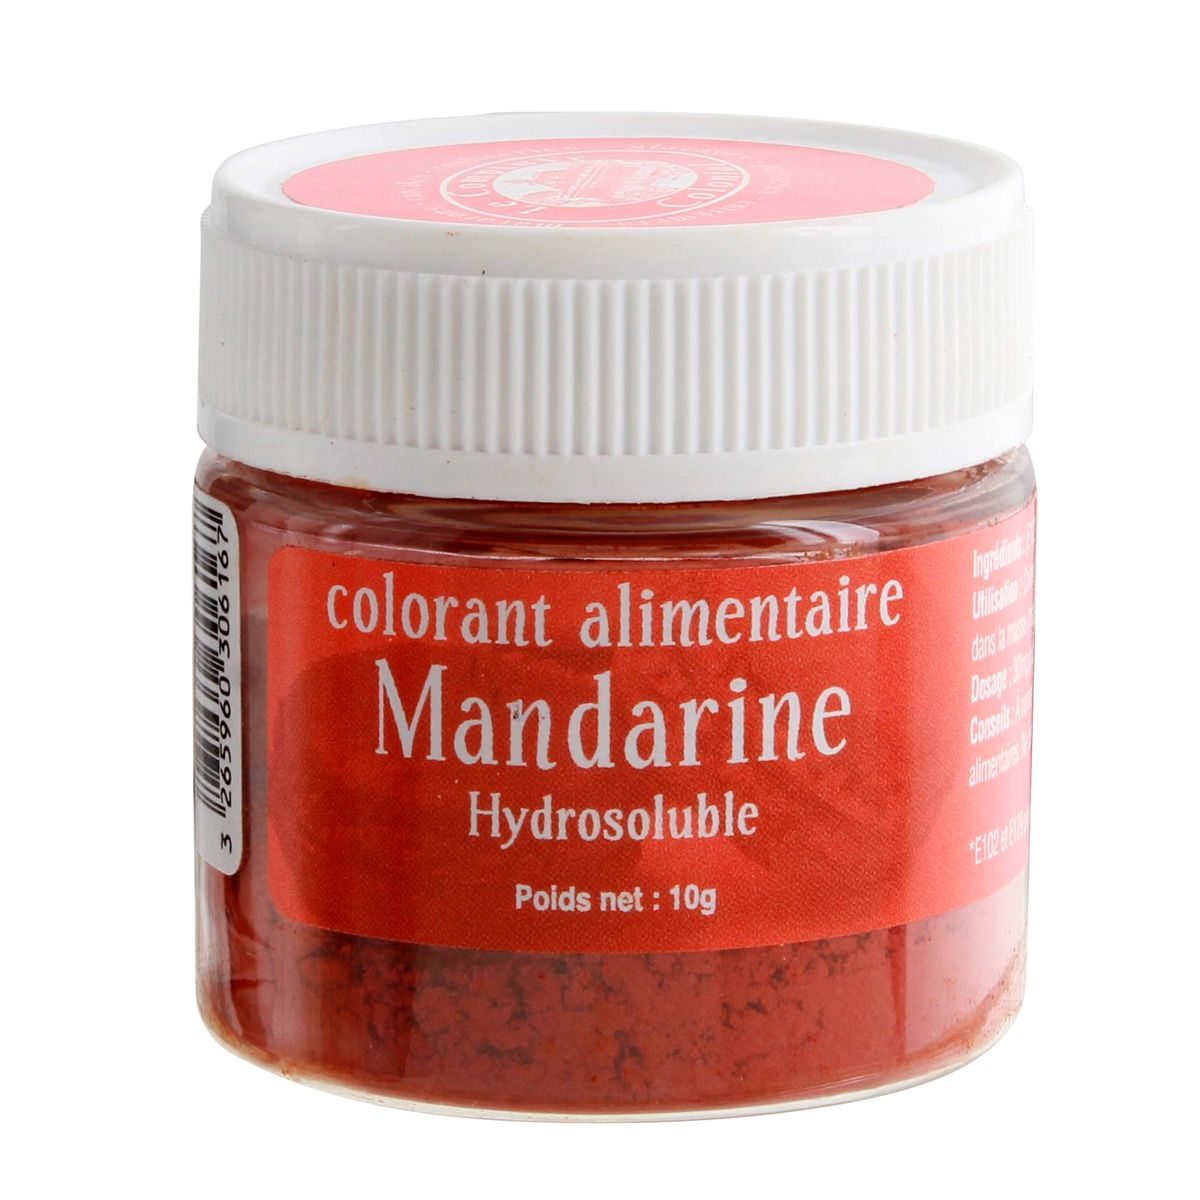 Colorant alimentaire hydrosoluble 10gr mandarine - Le Comptoir Colonial